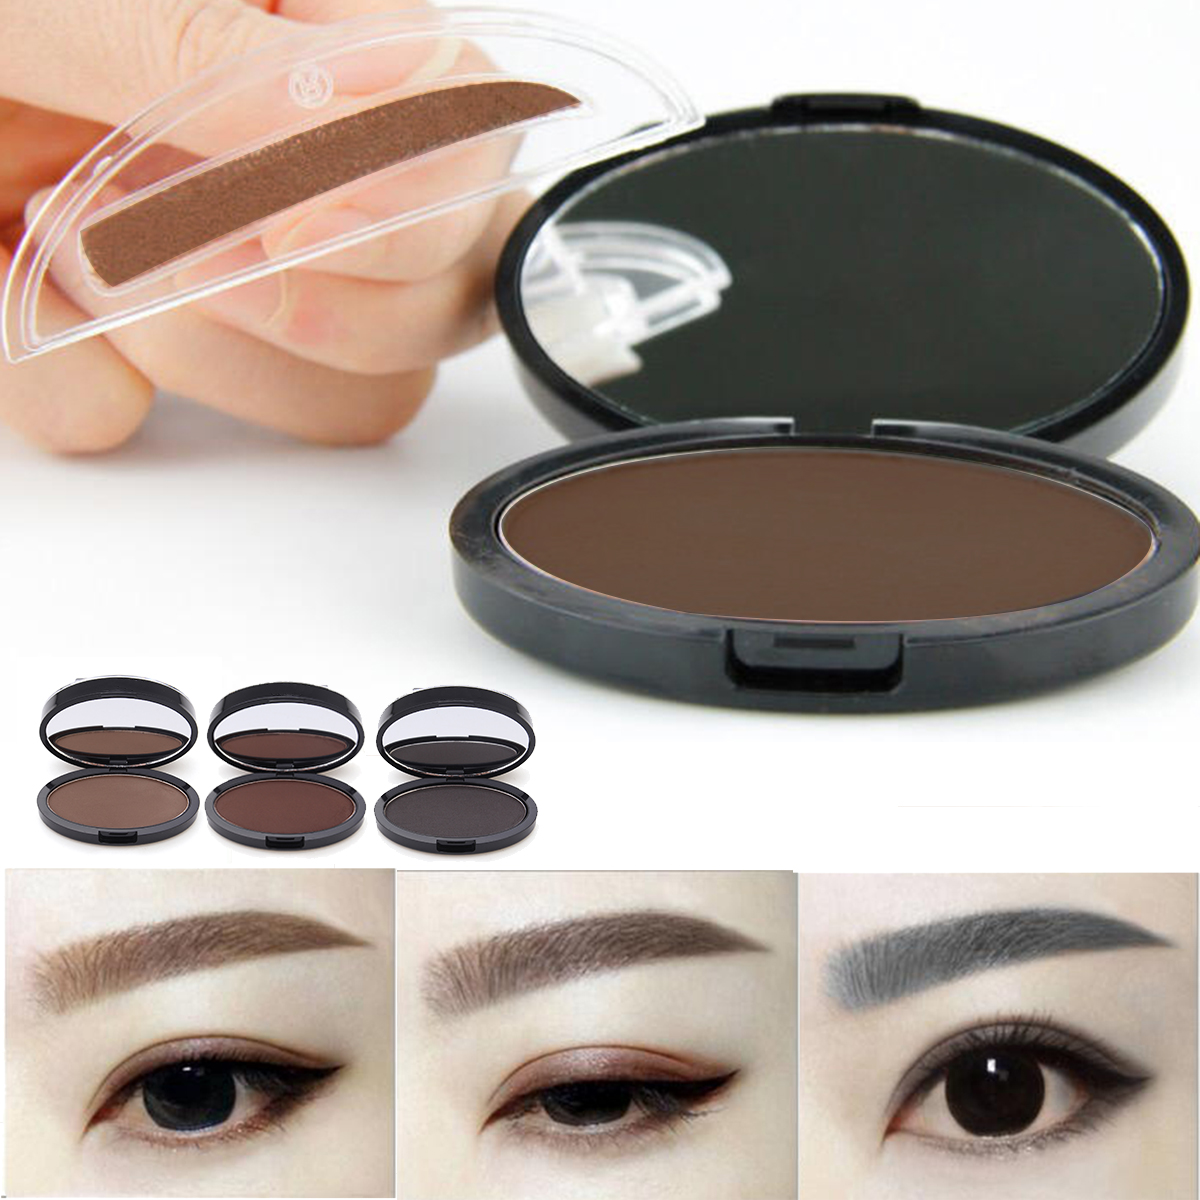 Buy Natural Long-Lasting Waterproof Eyebrow Stamp Brwon Grey Eyes Makeup Powder Palette Tool